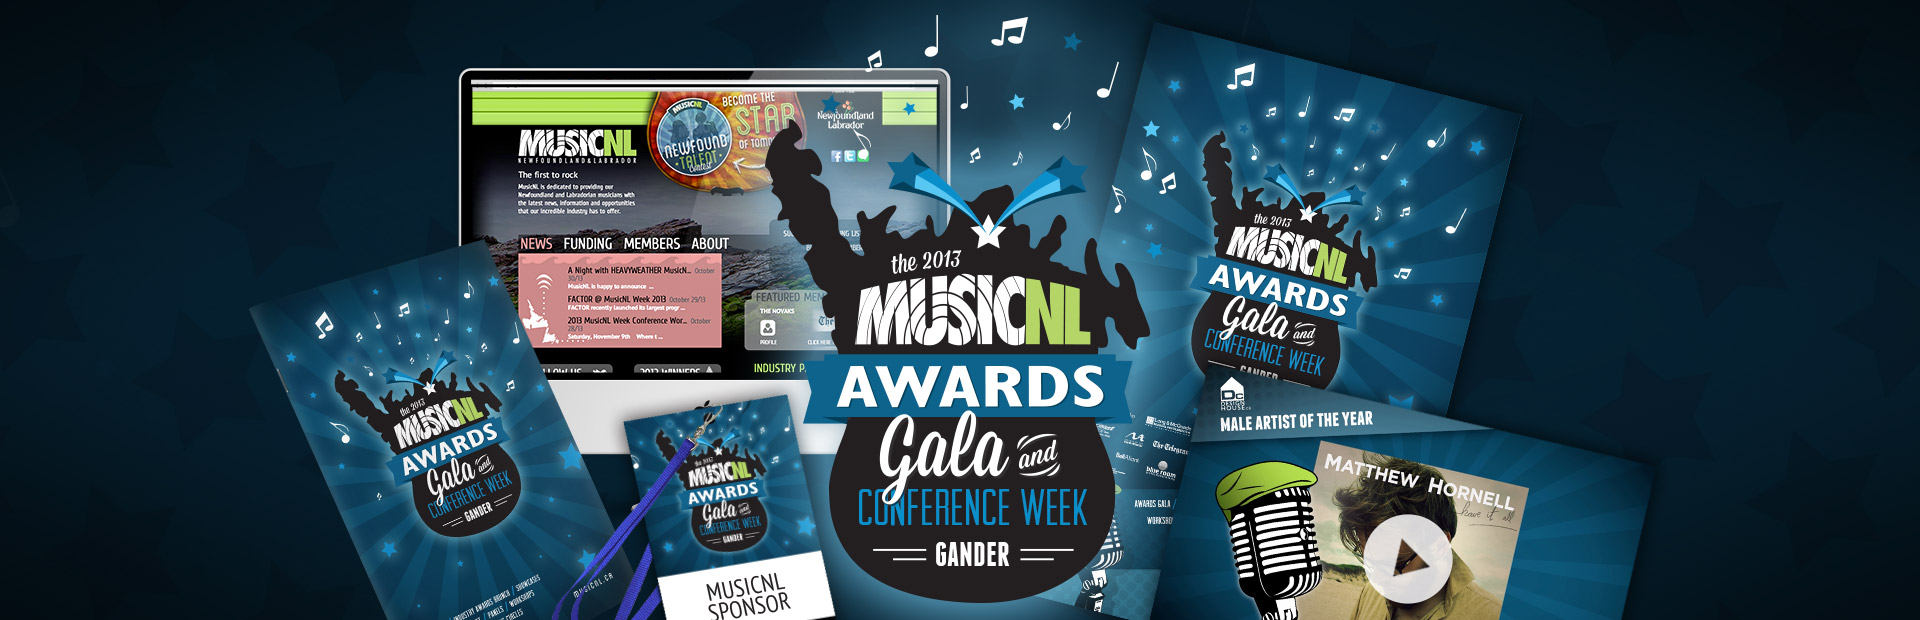 Campaign for MusicNL 2013 Awards